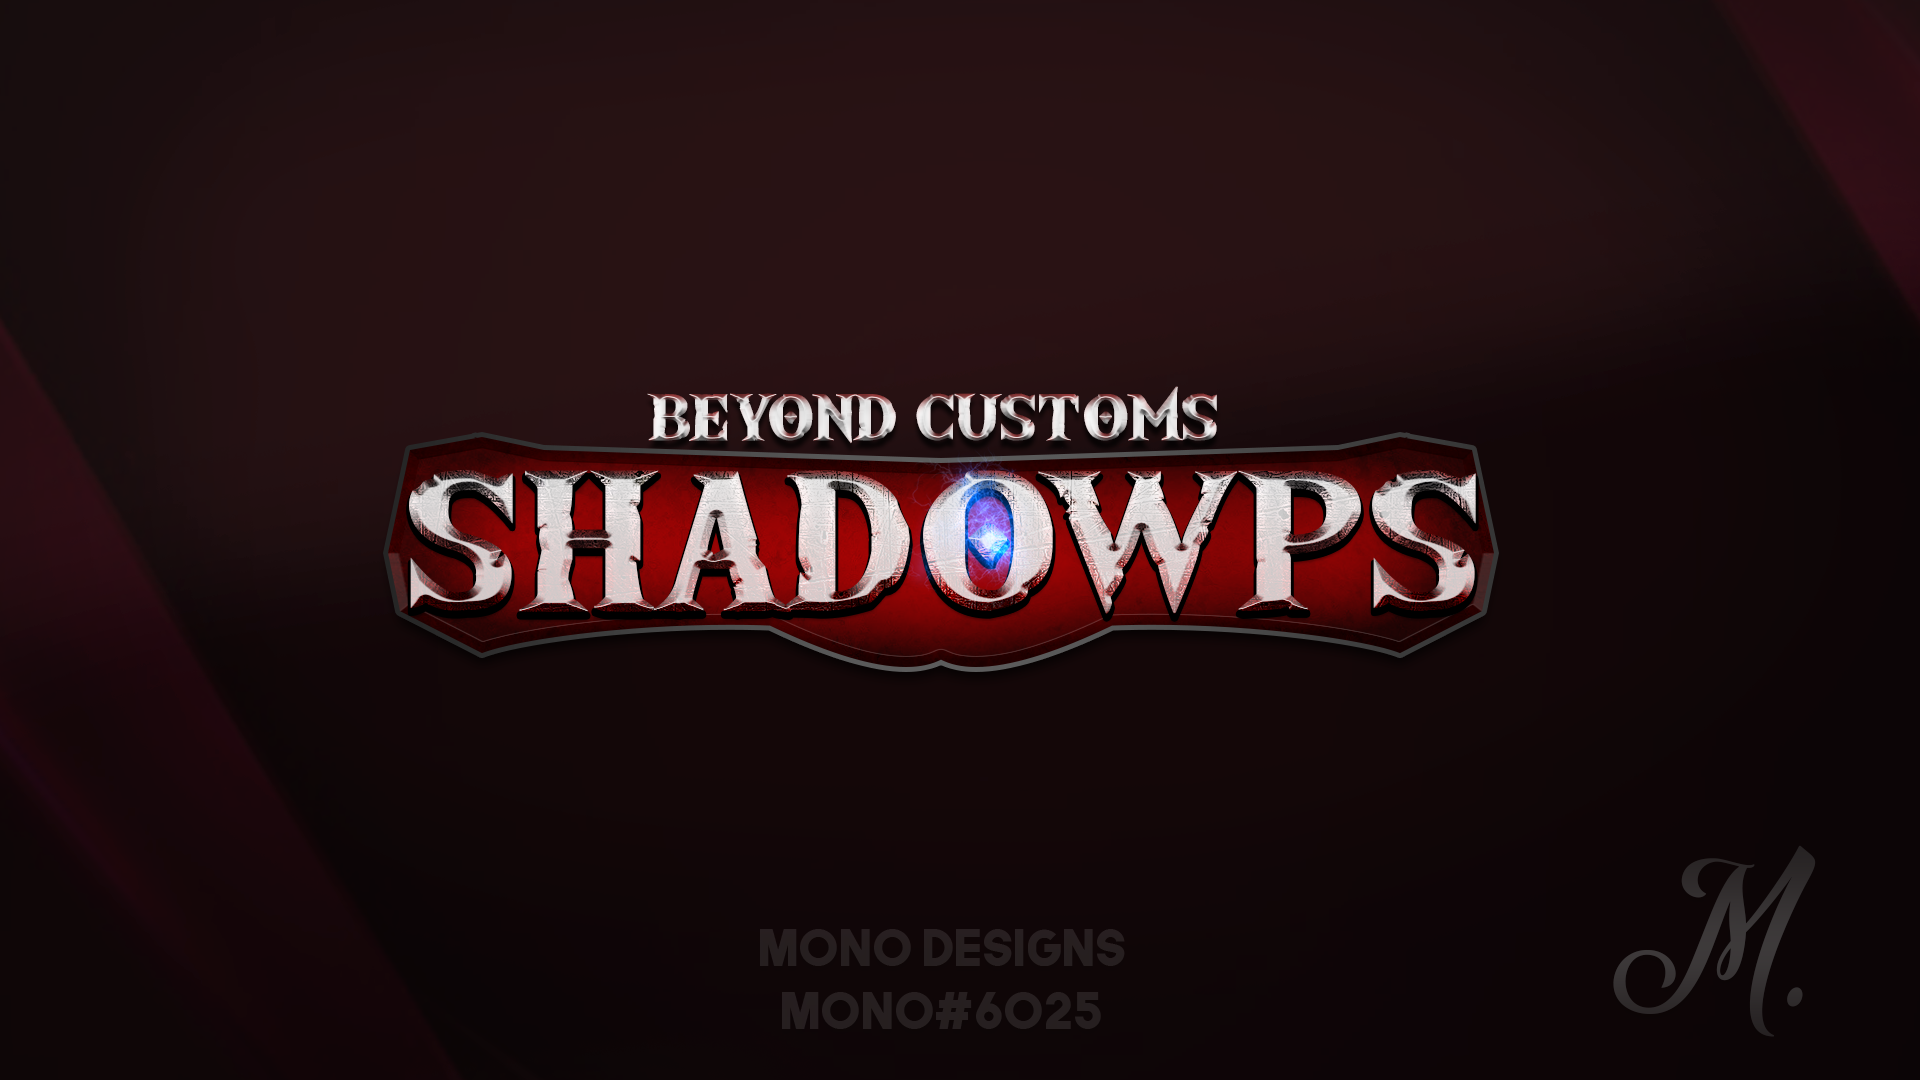 ShadowPS_logo.png